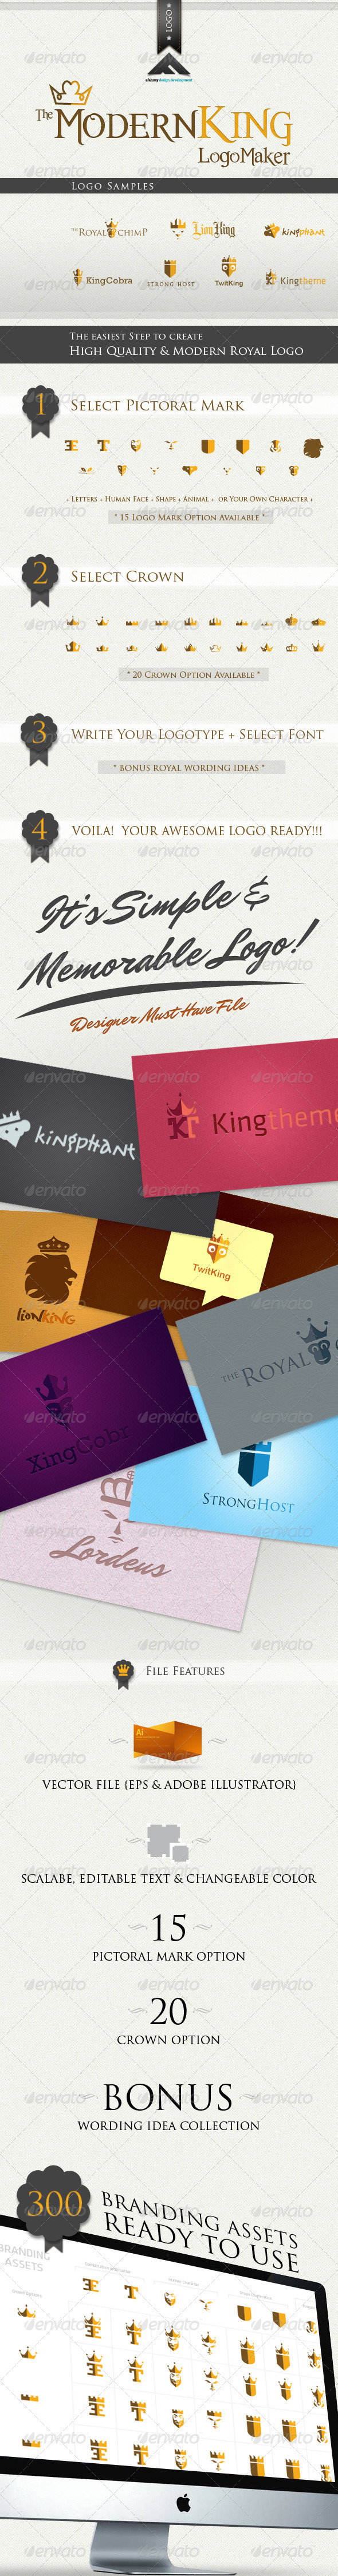 Modern King Logo Kit - Objects Logo Templates